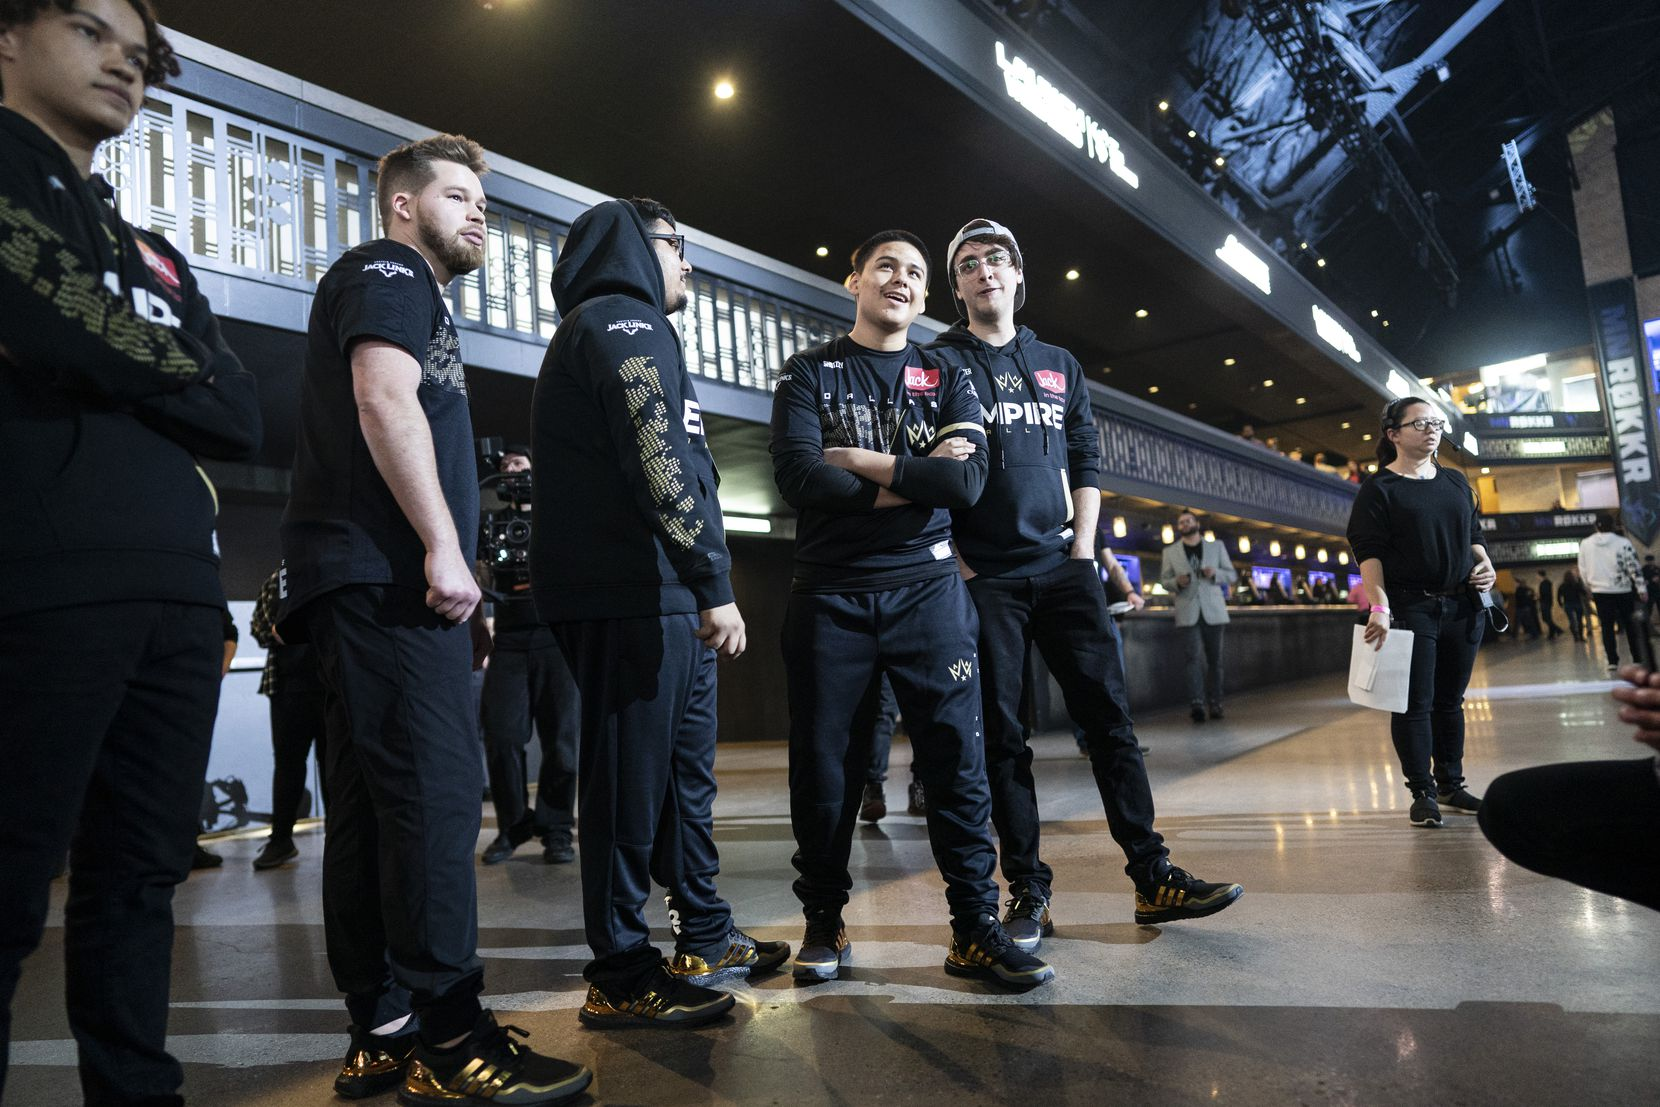 The Dallas Empire team waits to compete against the Chicago Huntsmen in the Call of Duty League Launch Weekend at the Armory in Minneapolis, Minn., January 24, 2020.